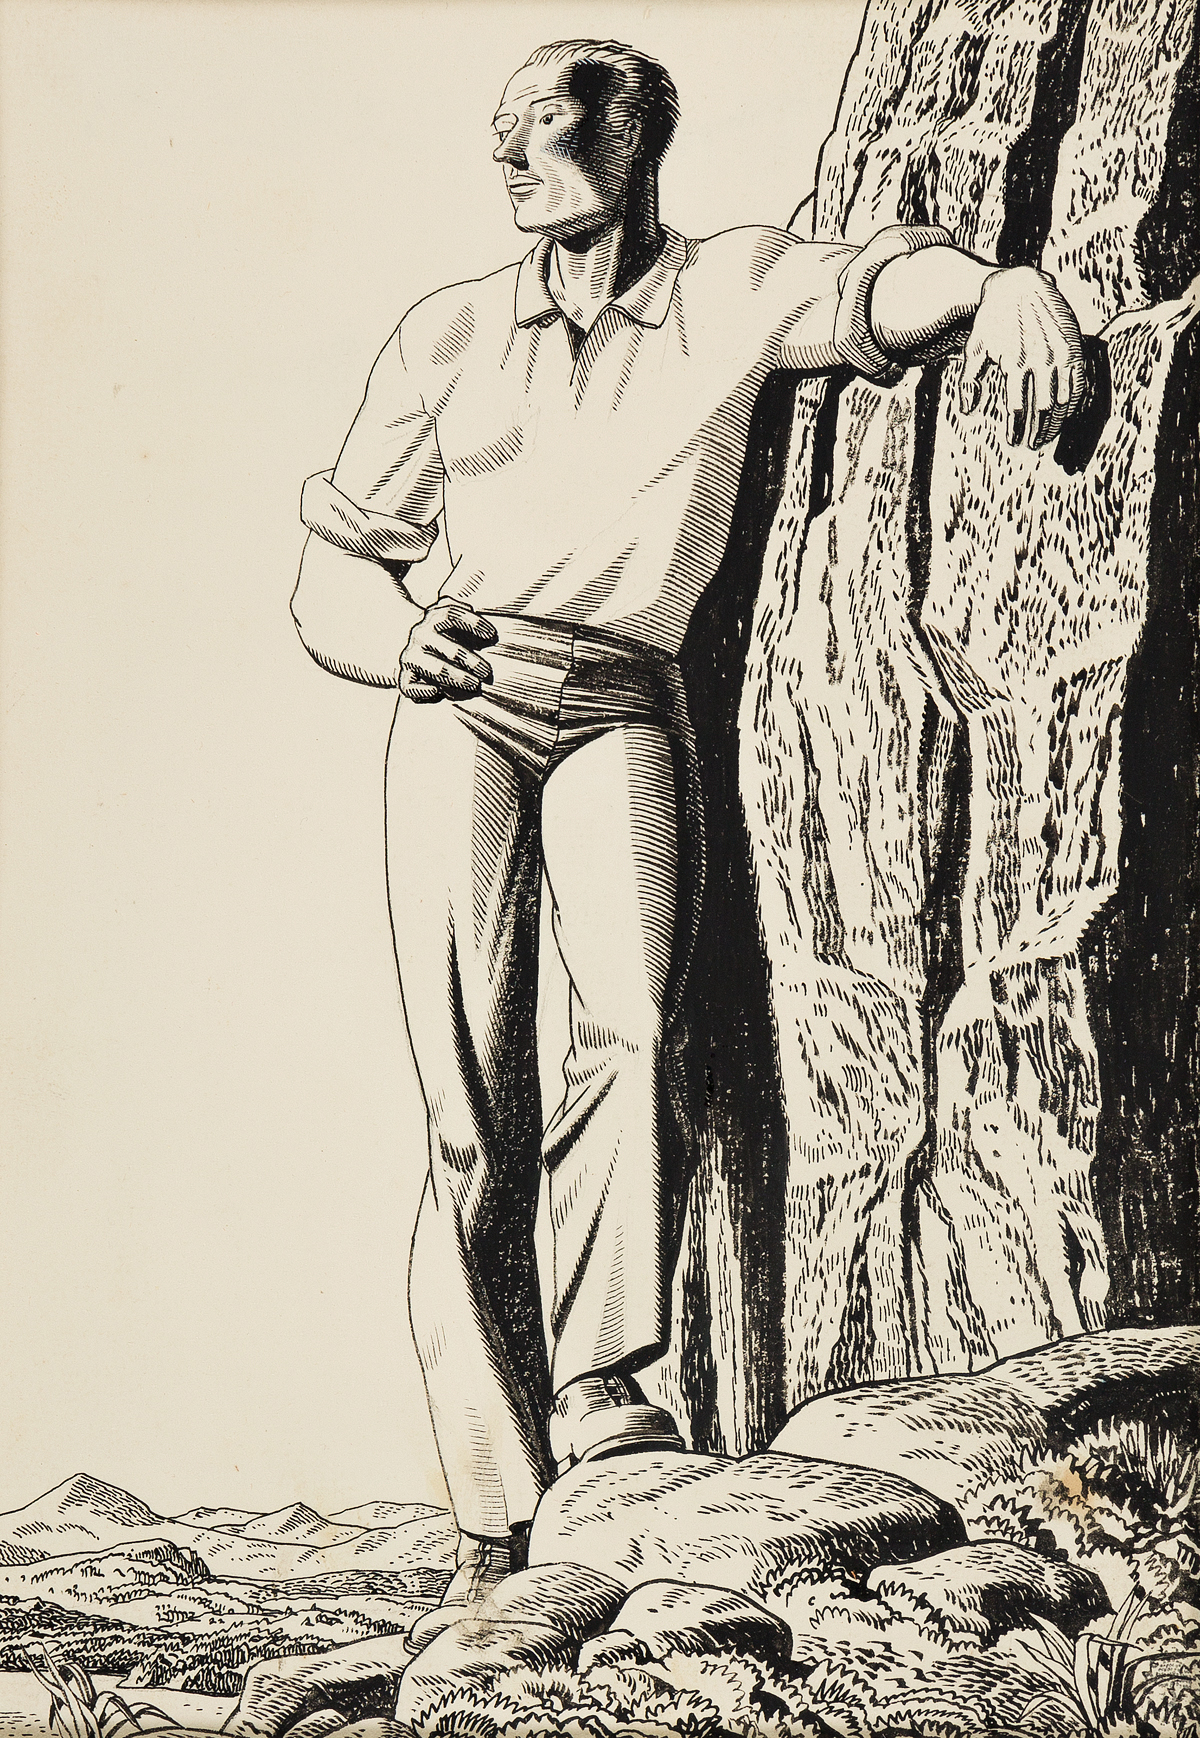 ROCKWELL-KENT-A-Man-on-a-Rocky-Outcropping